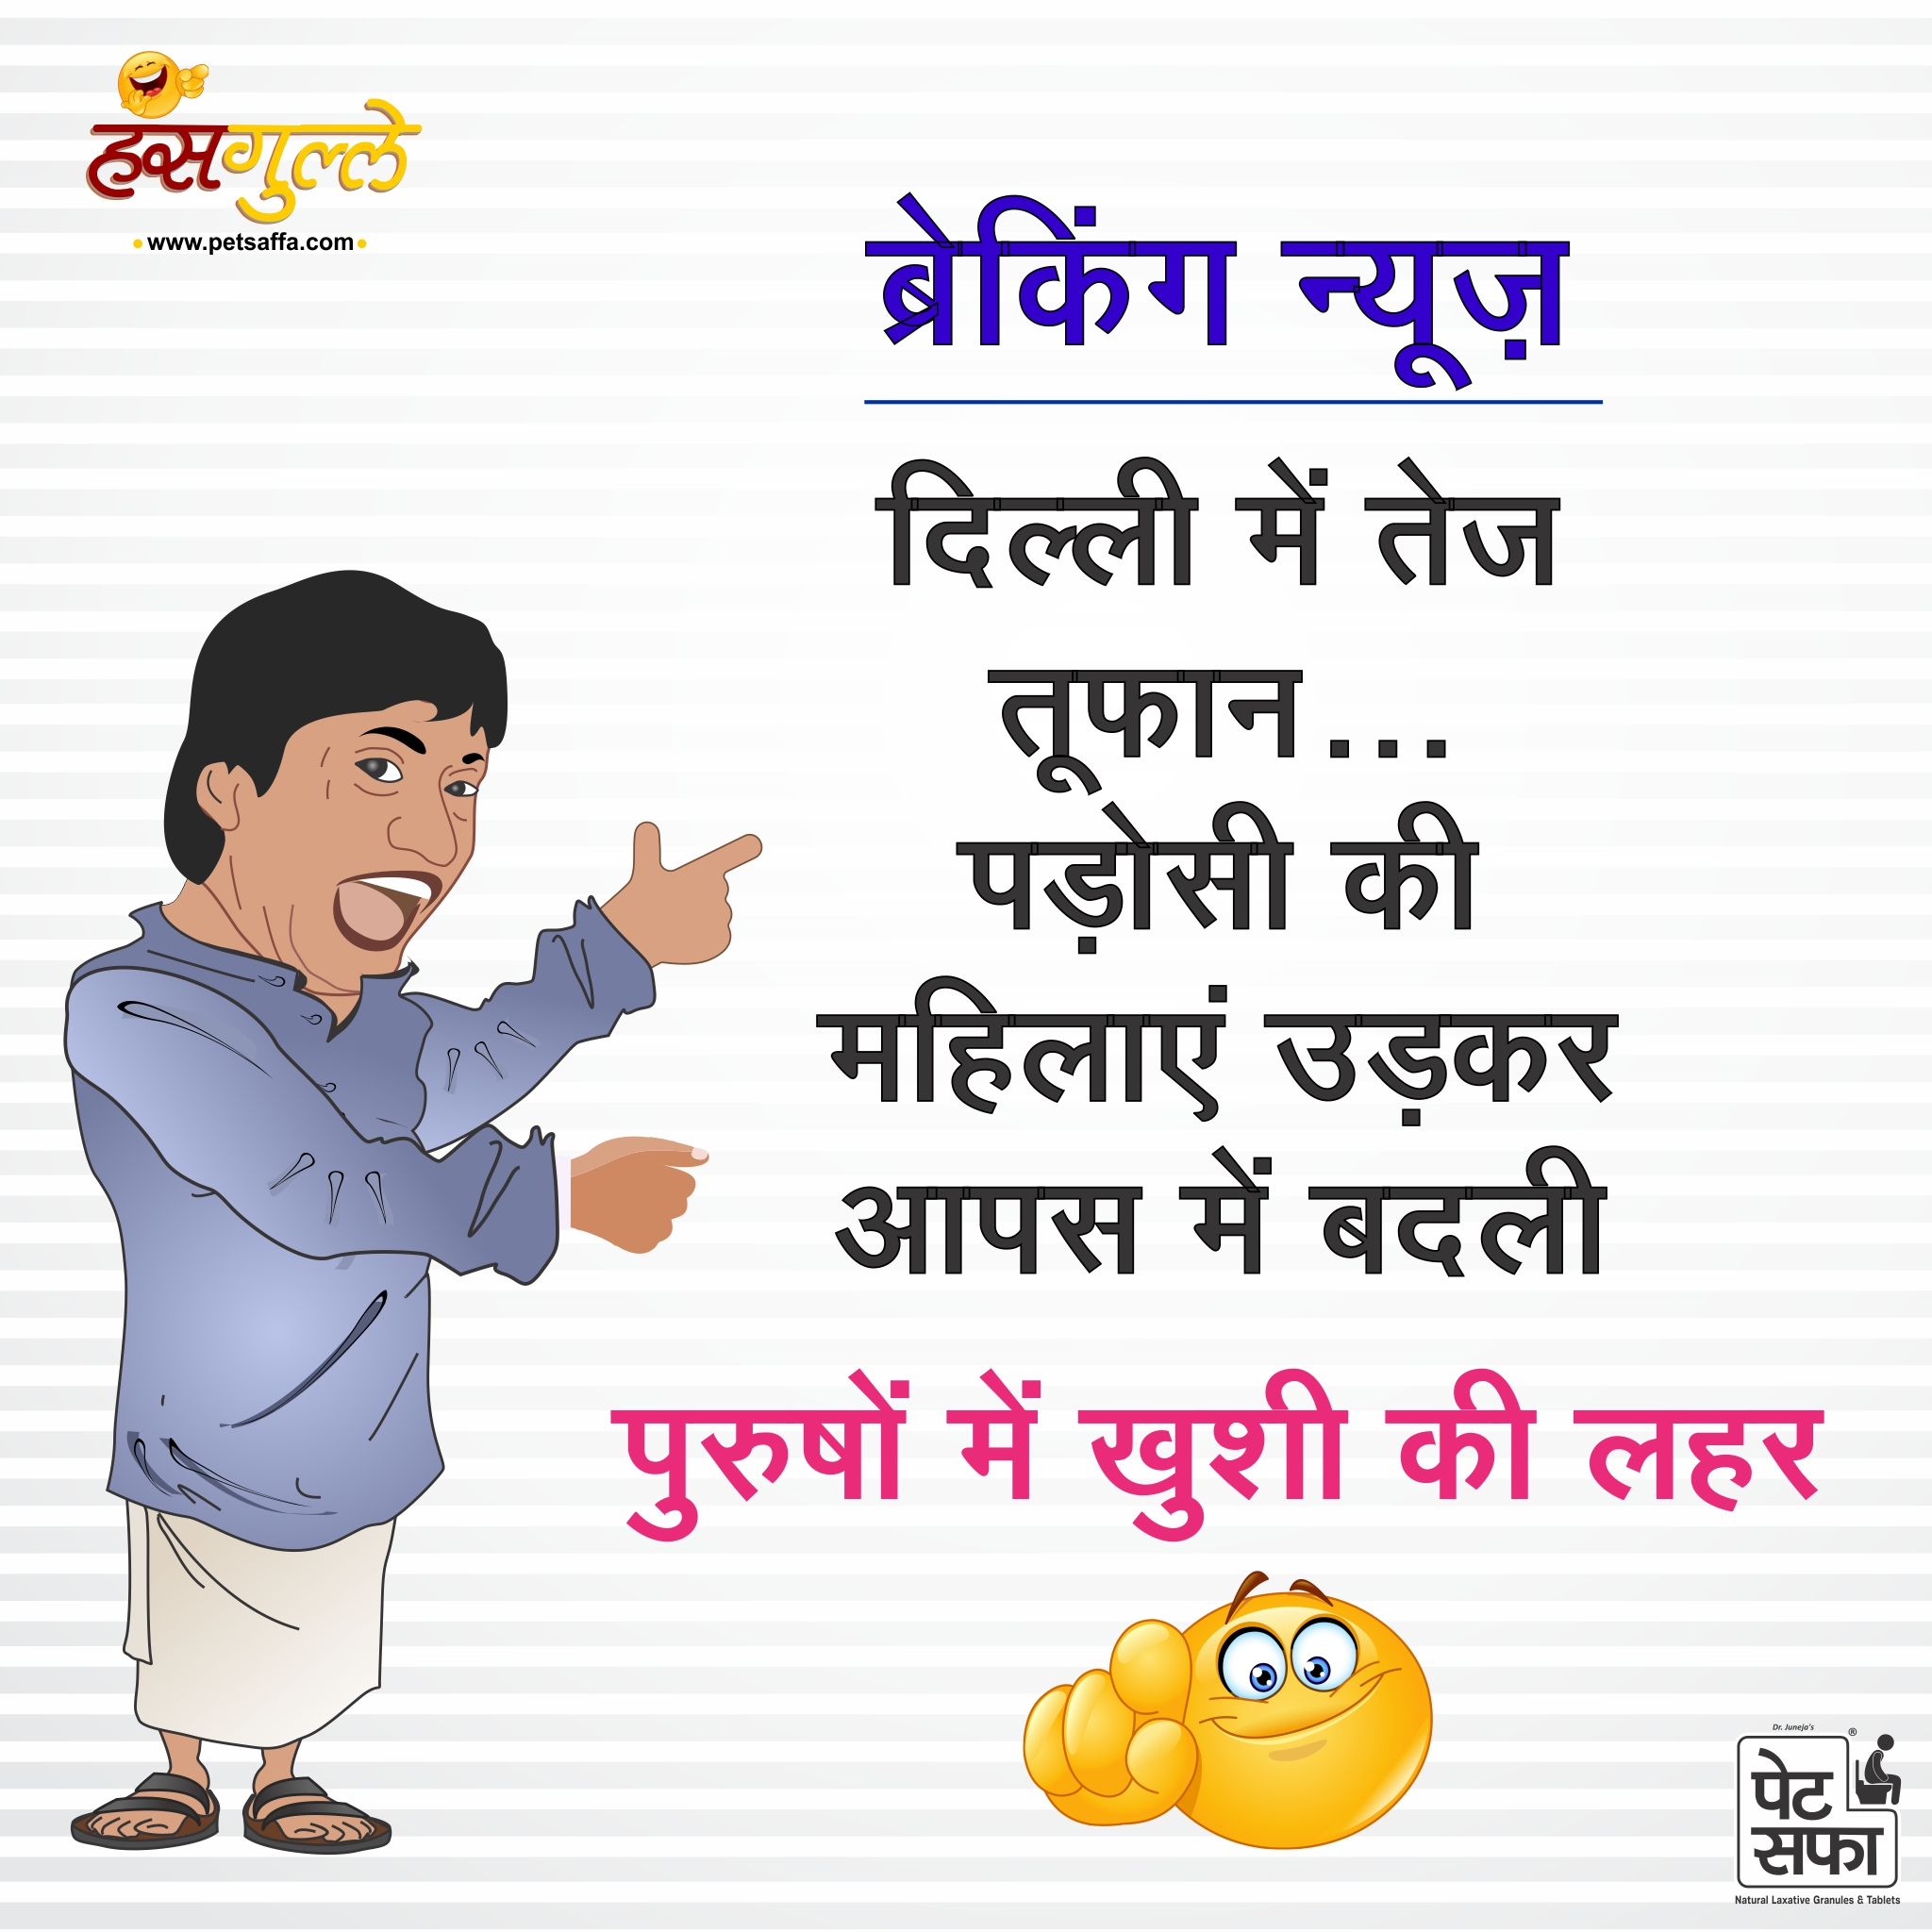 Funniest Viral Videos: Top 10 Funny And Viral Jokes In Hindi On Social Media